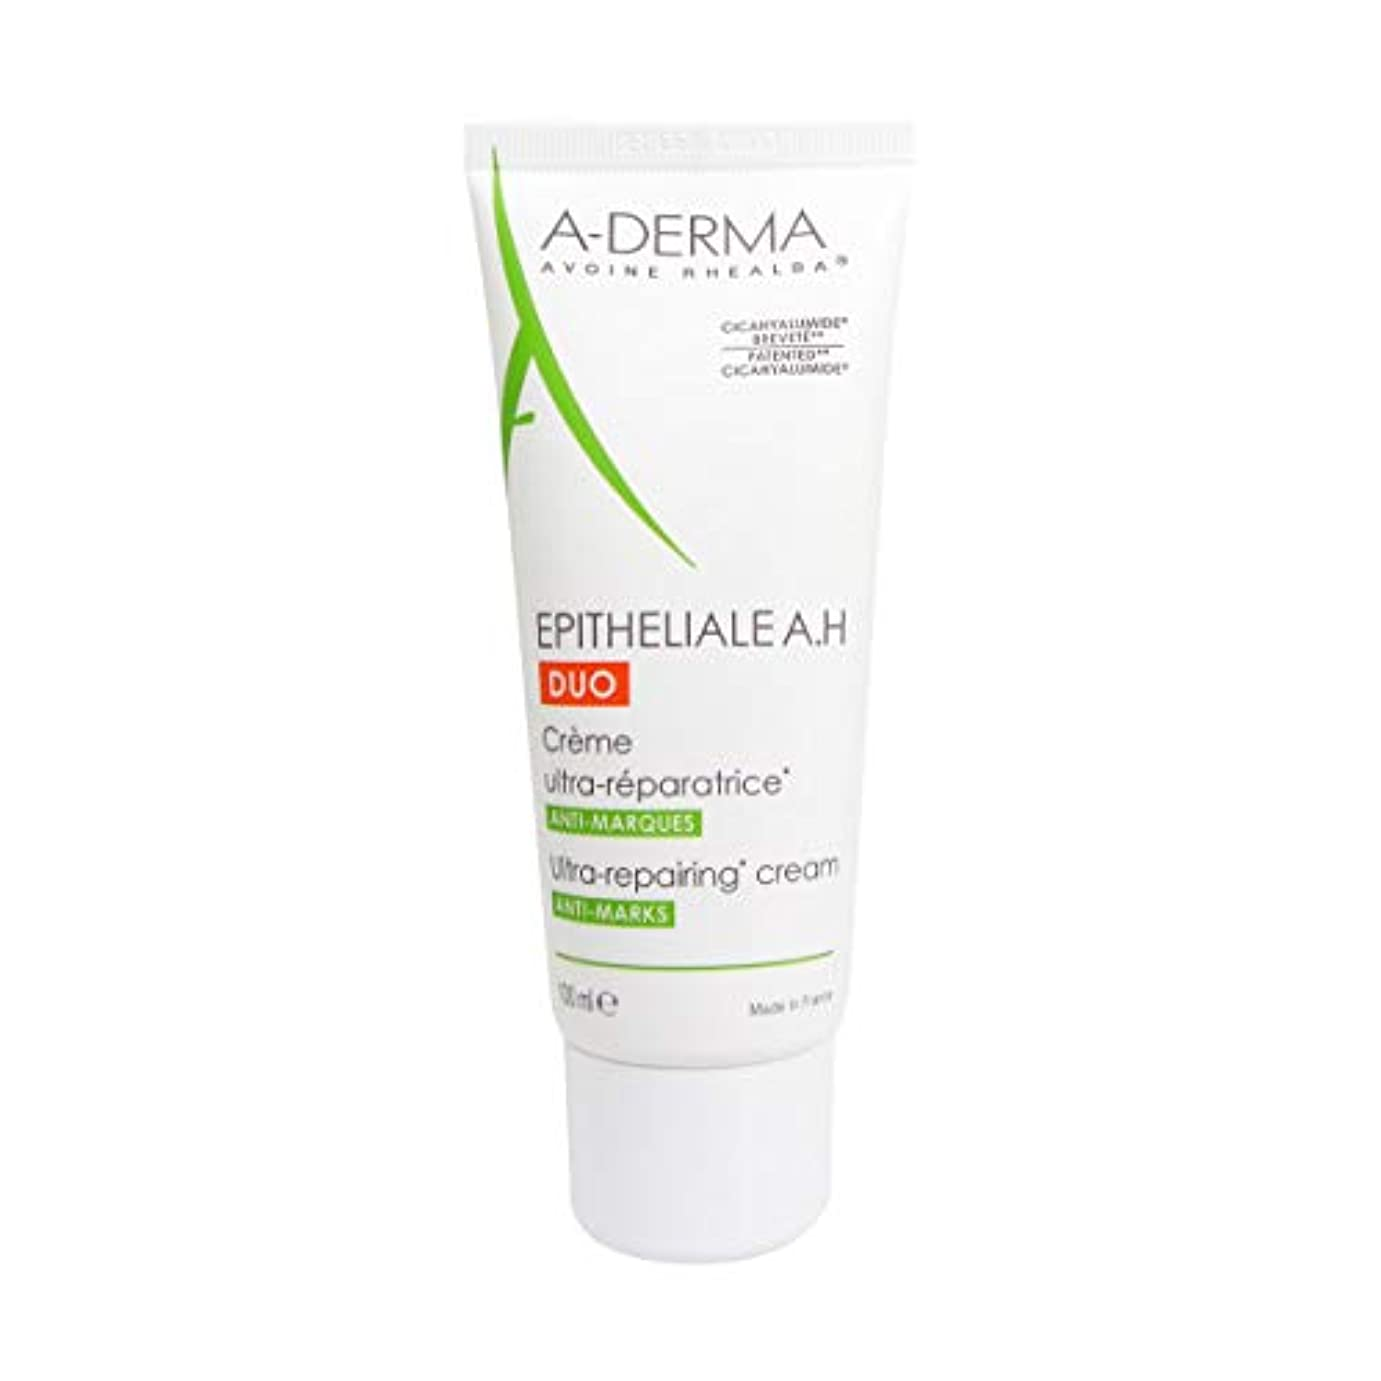 A-derma Epitheliale A.h. Duo Ultra-repairing Cream 100ml [並行輸入品]